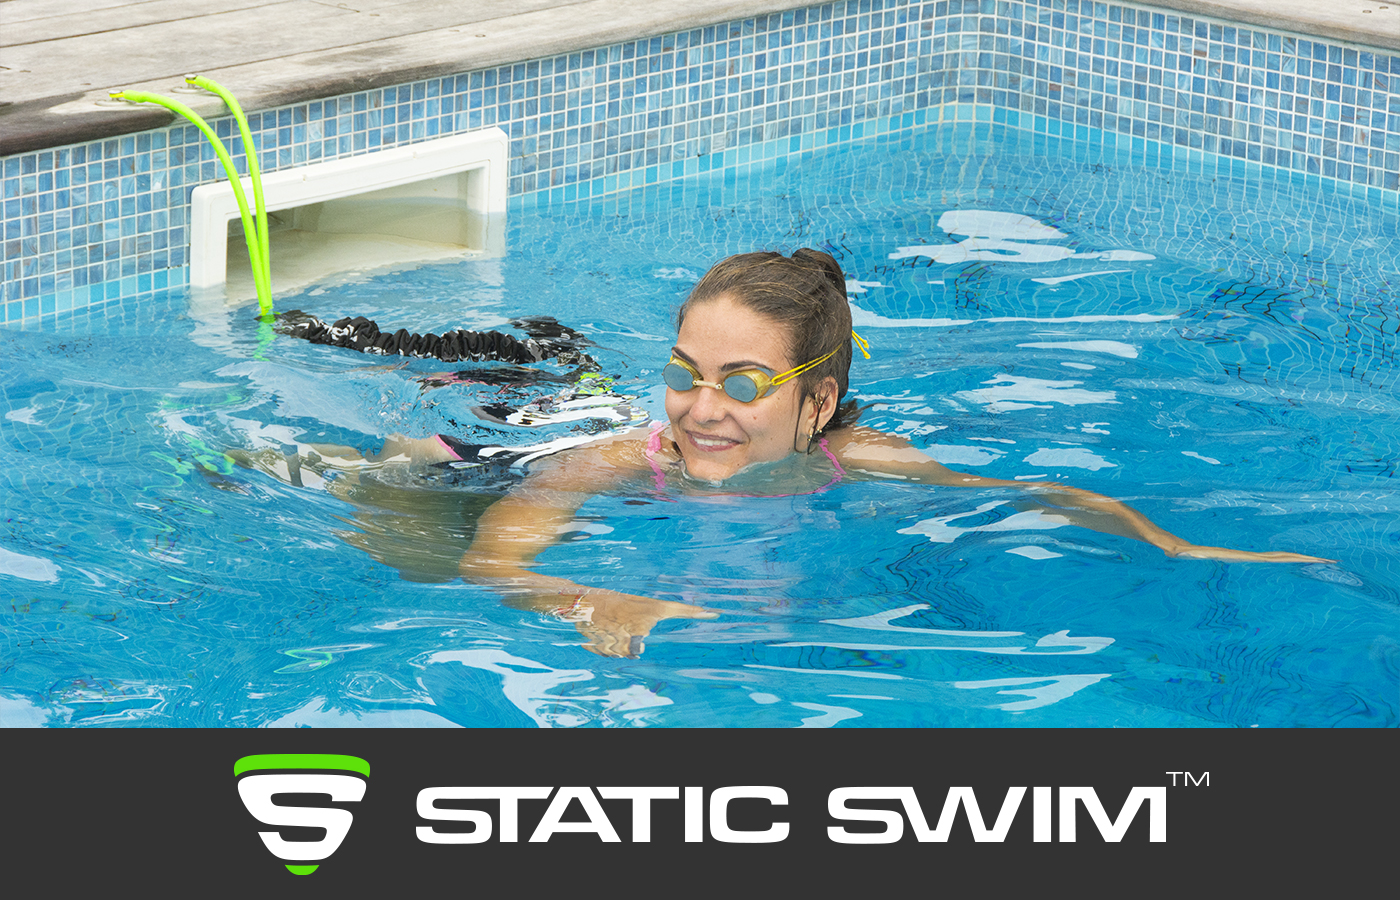 STATIC SWIM™ nageuse pause